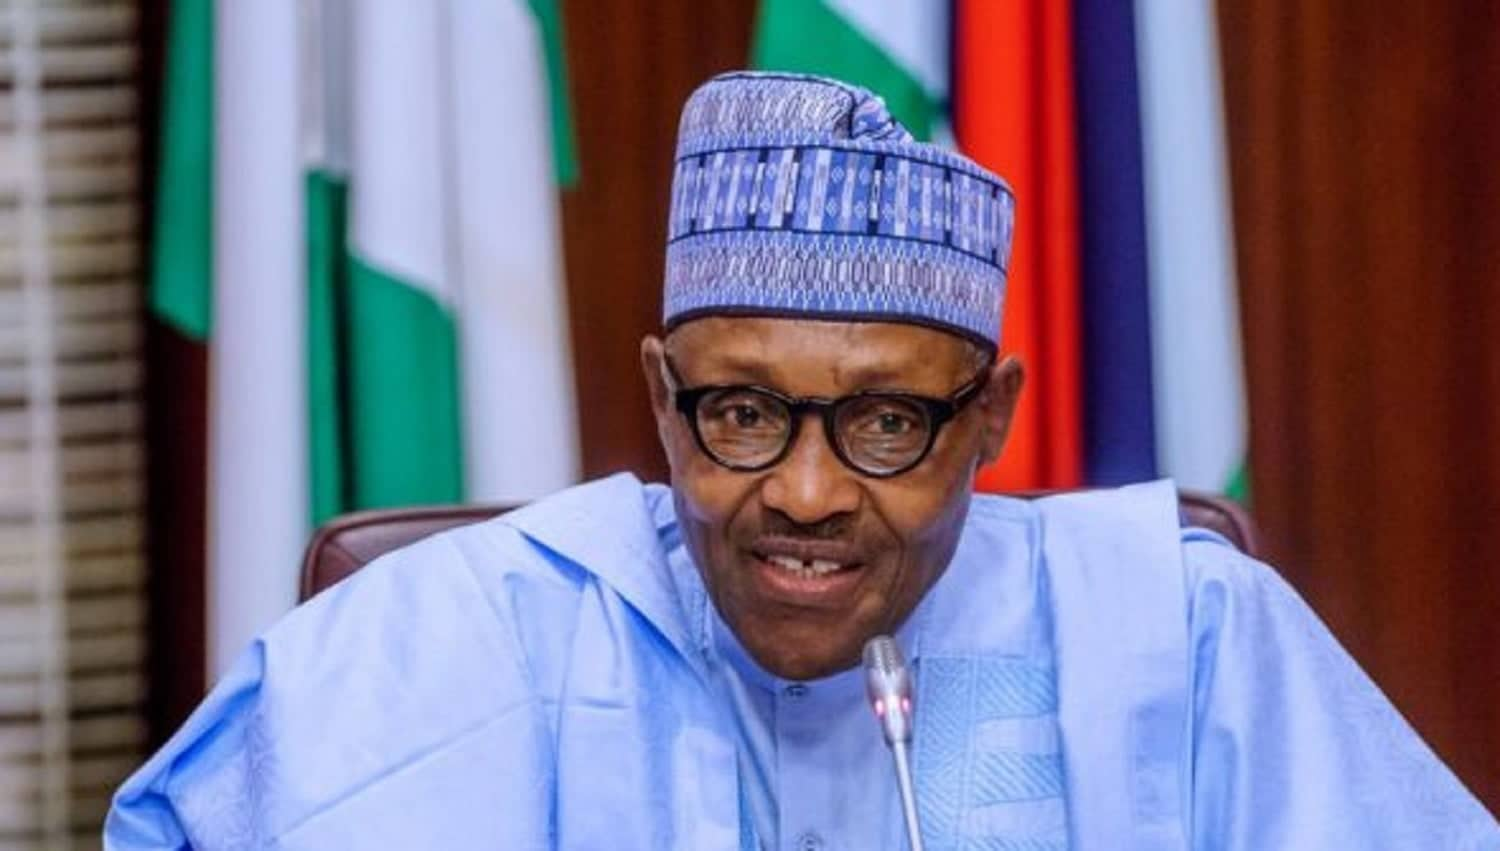 Buhari assures Nigerians of new resolve to end insecurity in Easter message